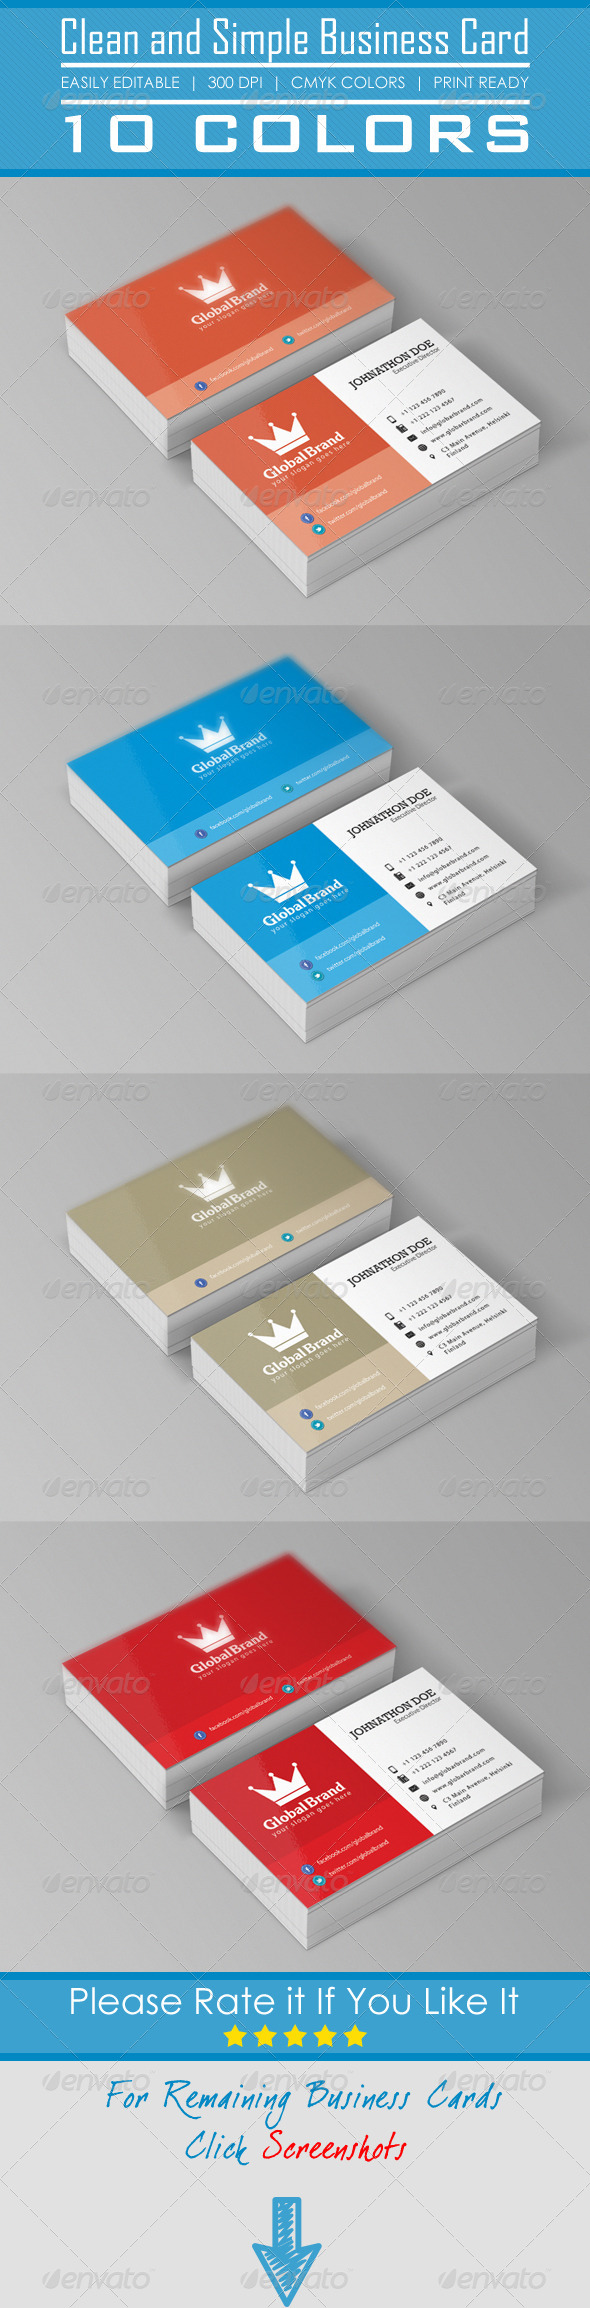 GraphicRiver Clean and Simple Business Card 5360178